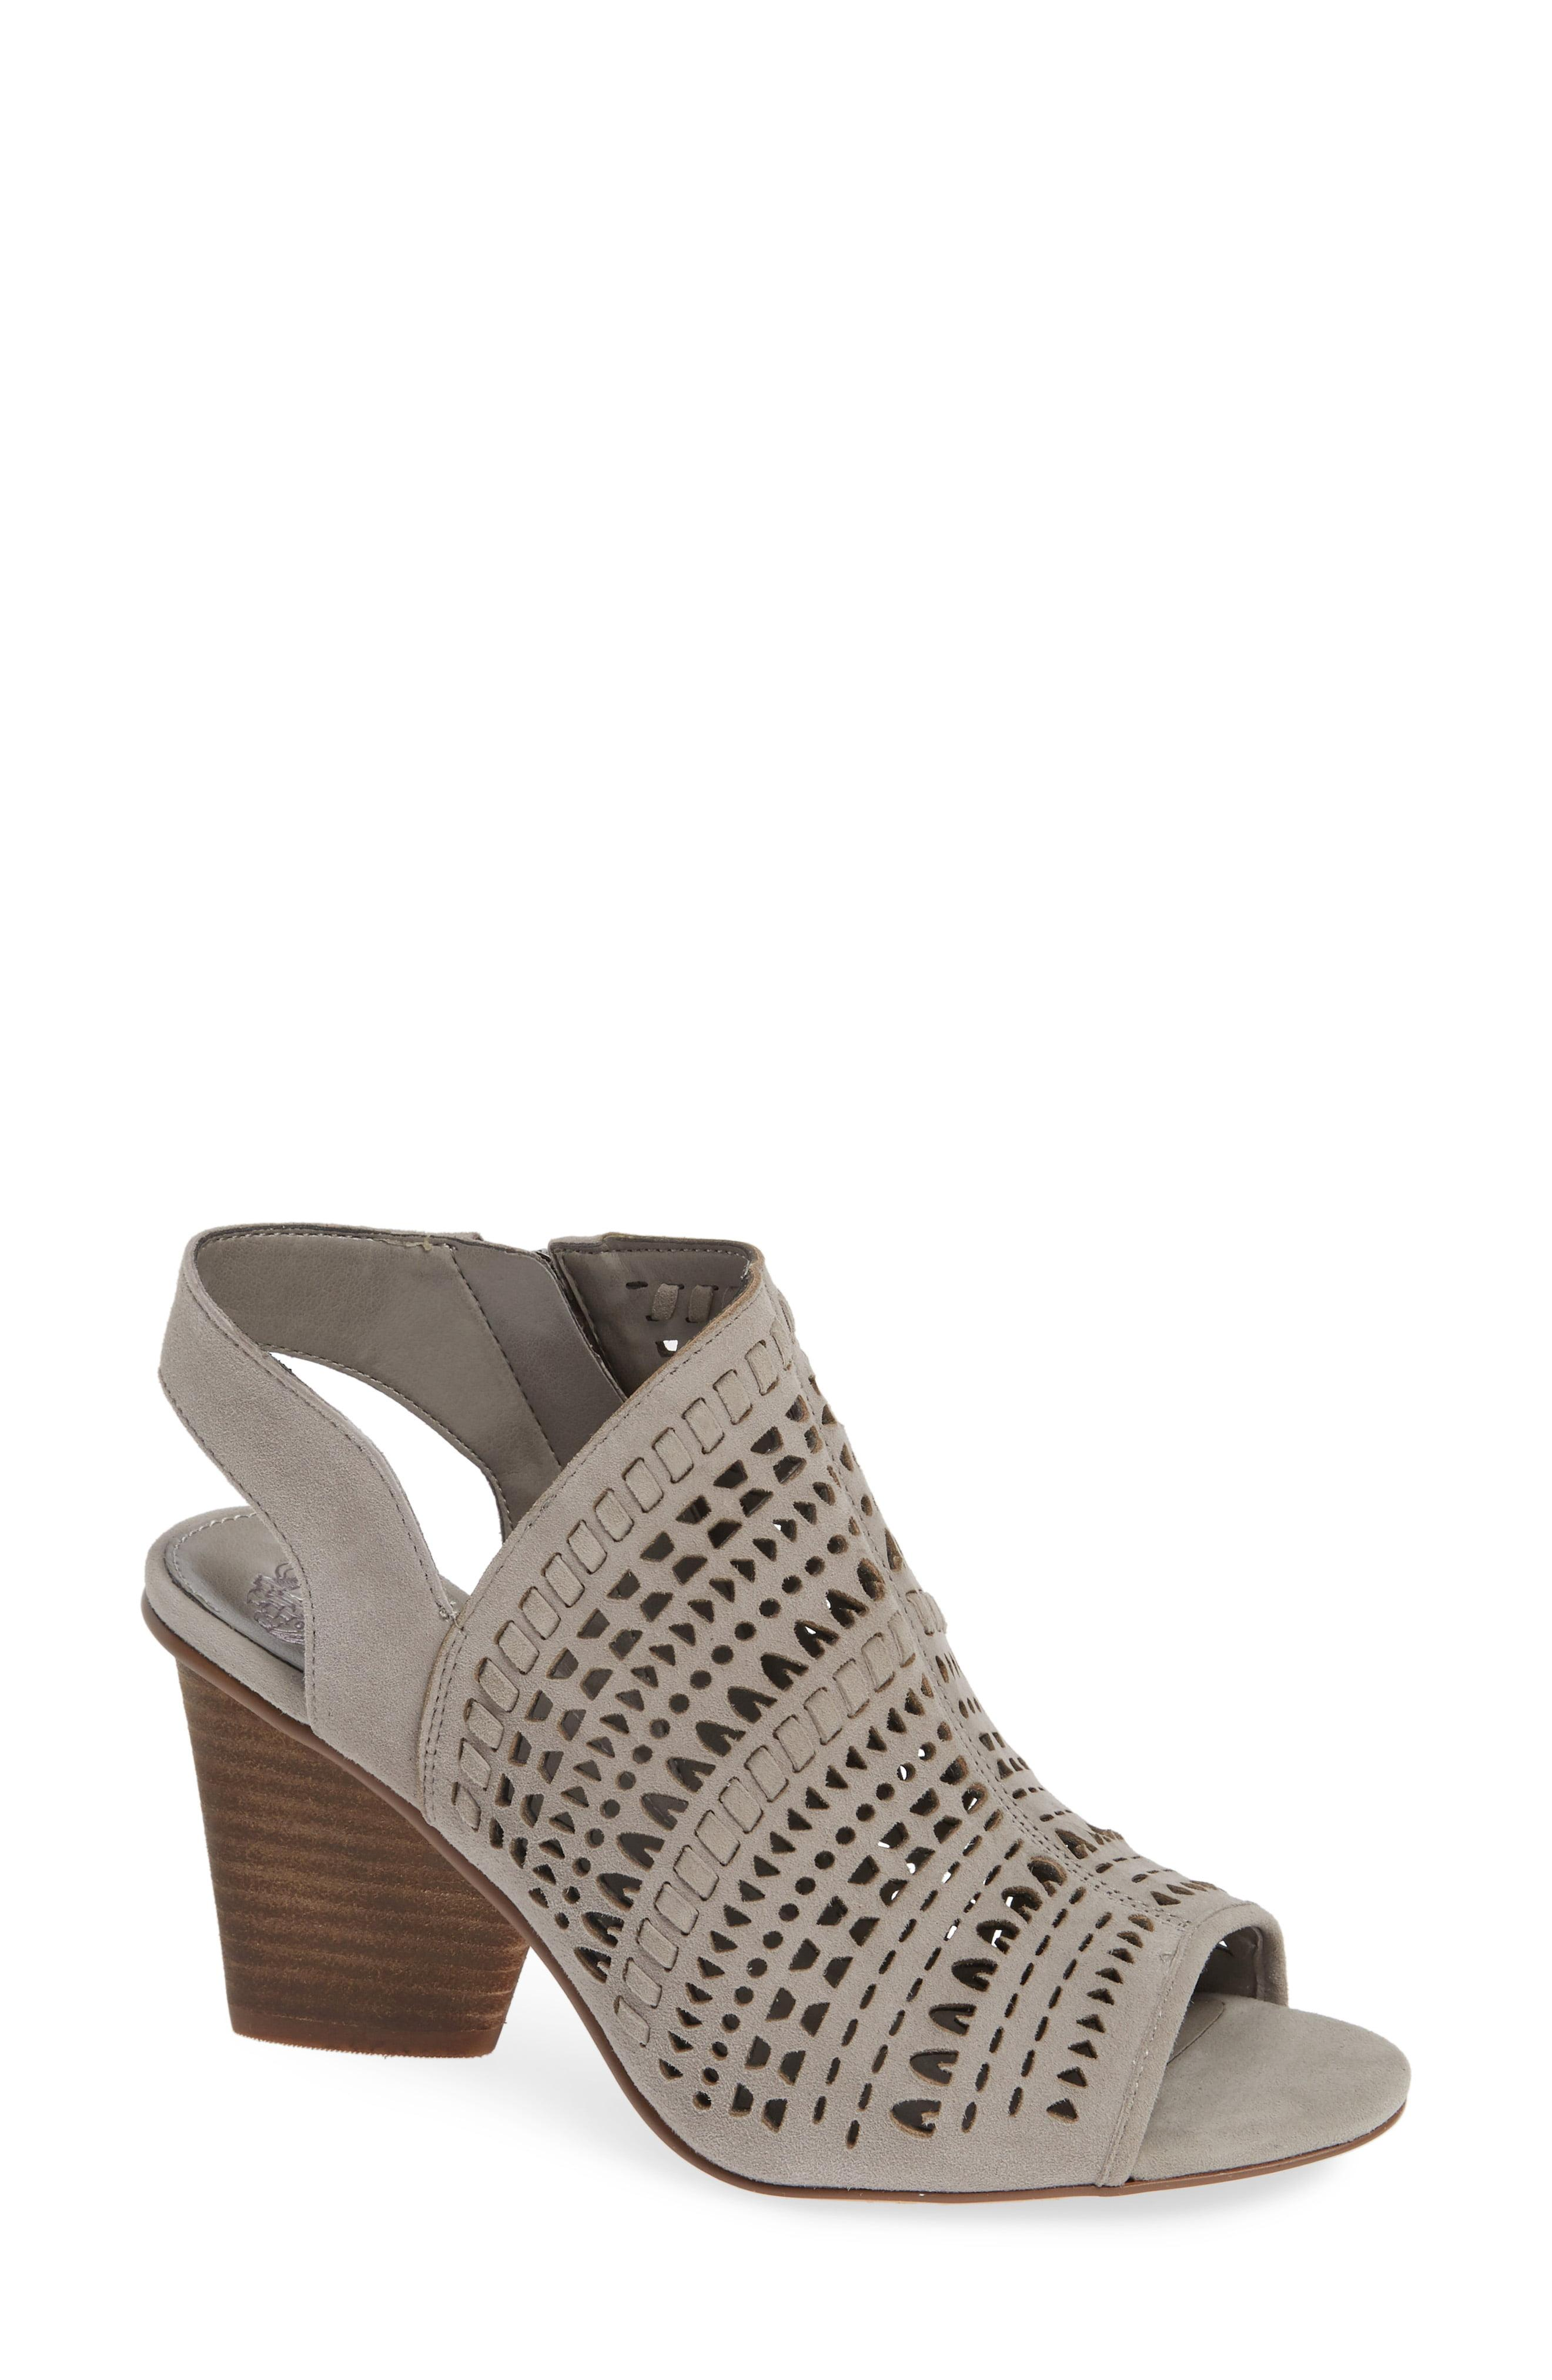 50a7e56fae4 Vince Camuto - Gray Derechie Perforated Shield Sandal - Lyst. View  fullscreen